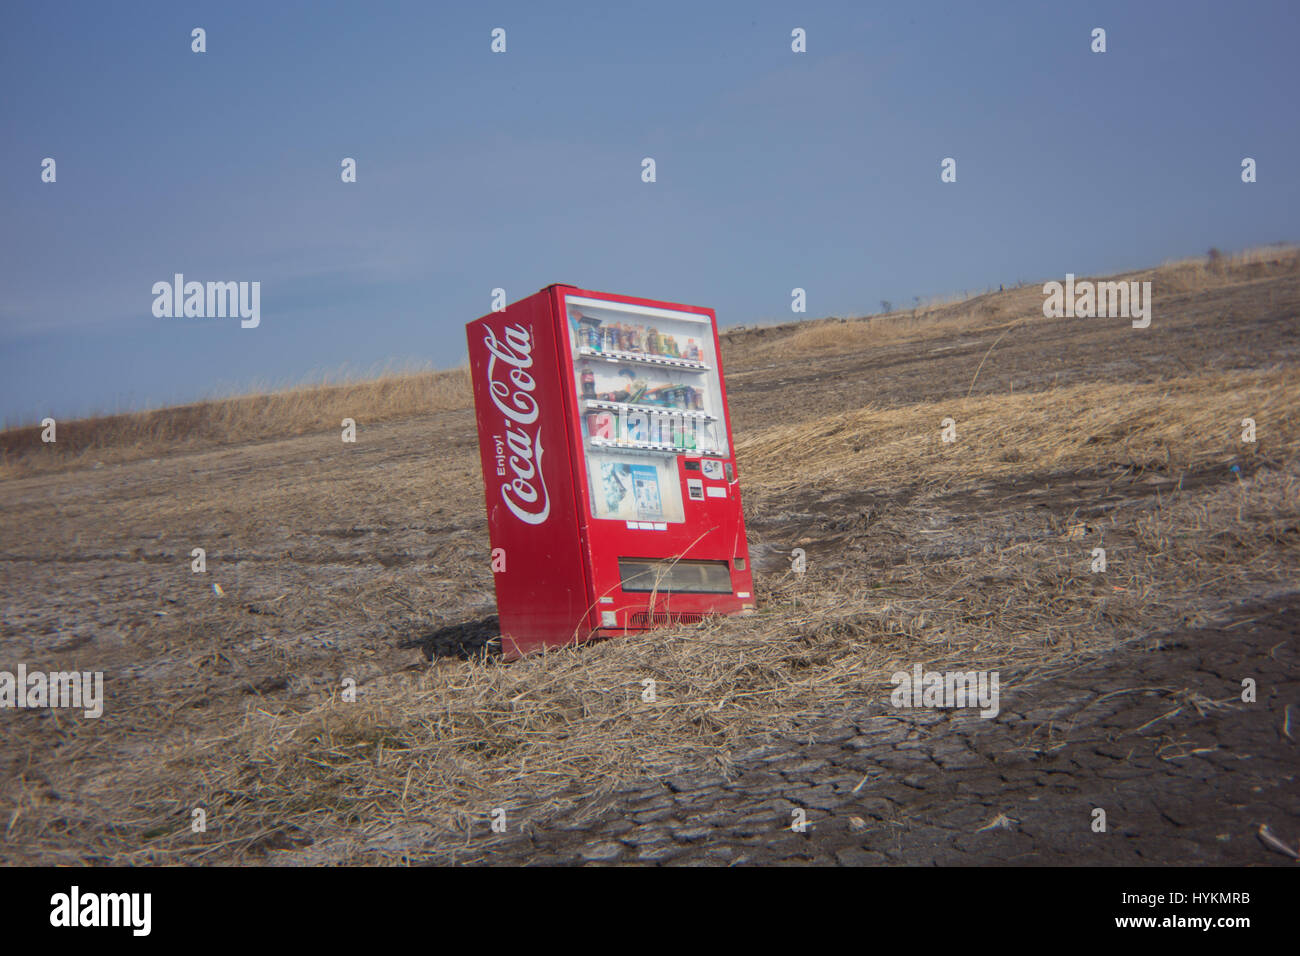 OTAMA VILLAGE, FUKUSHIMA: A vending machine is pictured in the middle of the landscape following the 2011 Tsunami. - Stock Image